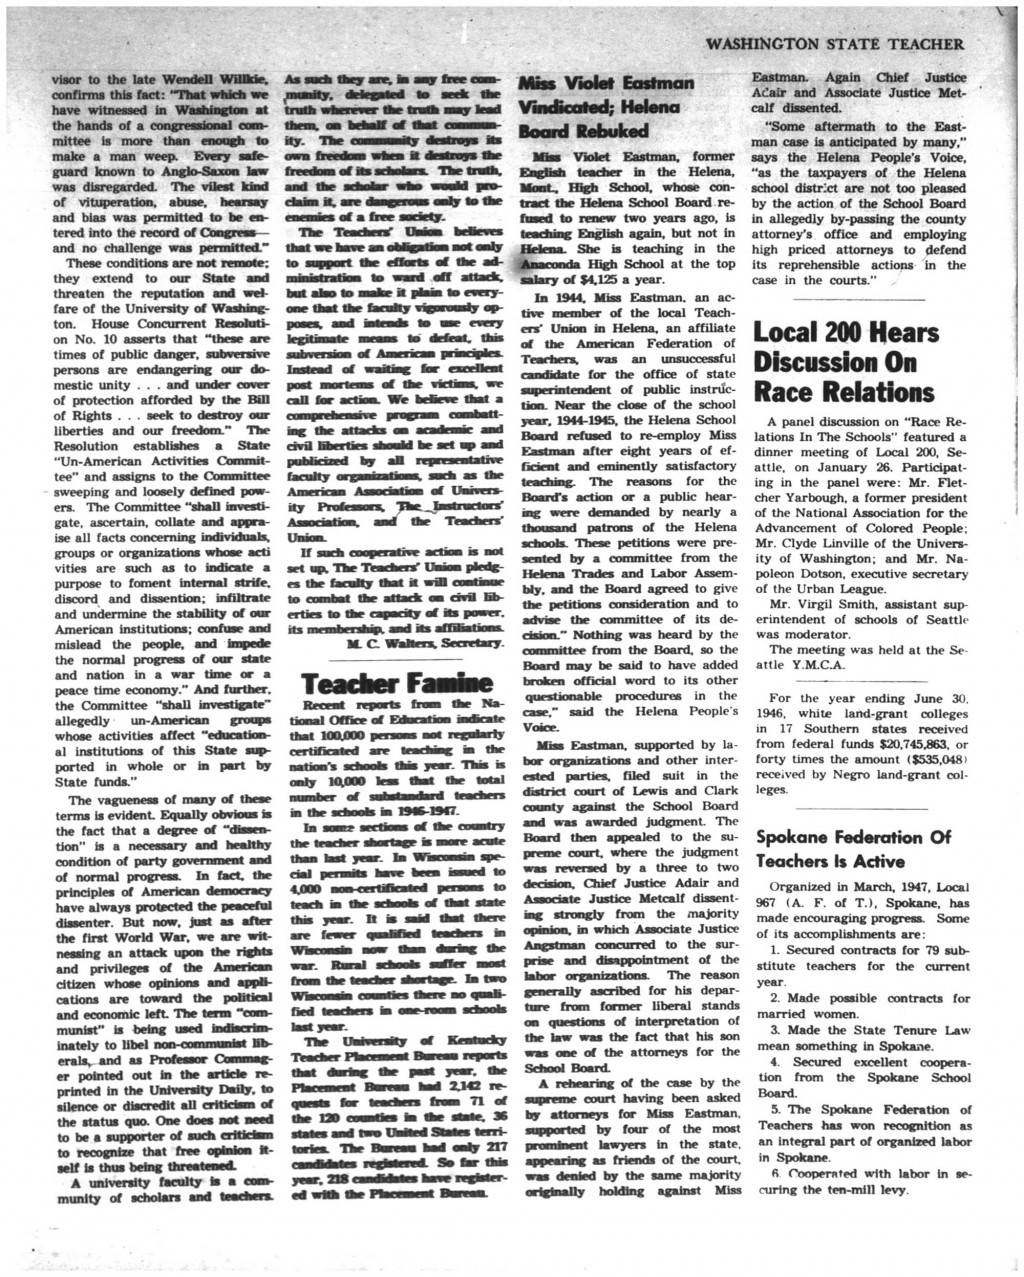 013 Essay Example Concept Examples Mar1948p320uw20local20401 Race Large Stunning Topic Paper Large